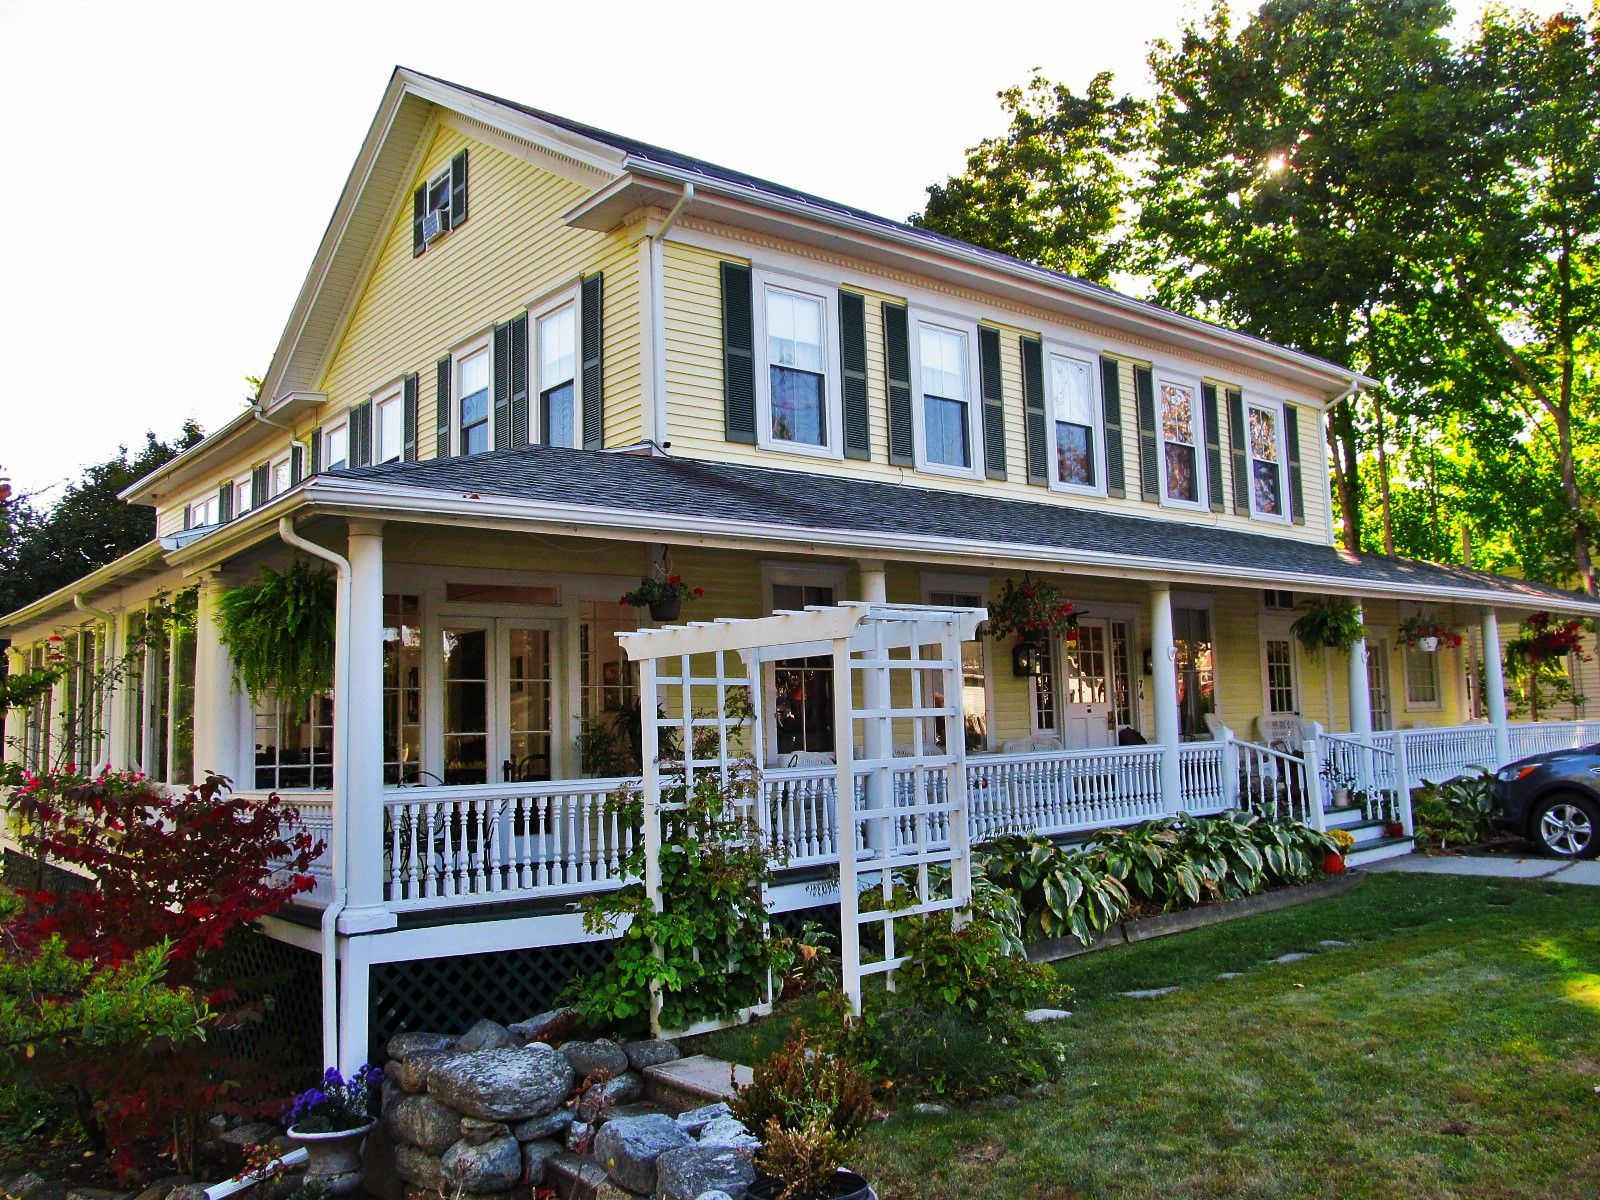 new large your escape breakfast inns blog and berkshires for england bed valentine exterior day options massachusetts maine s